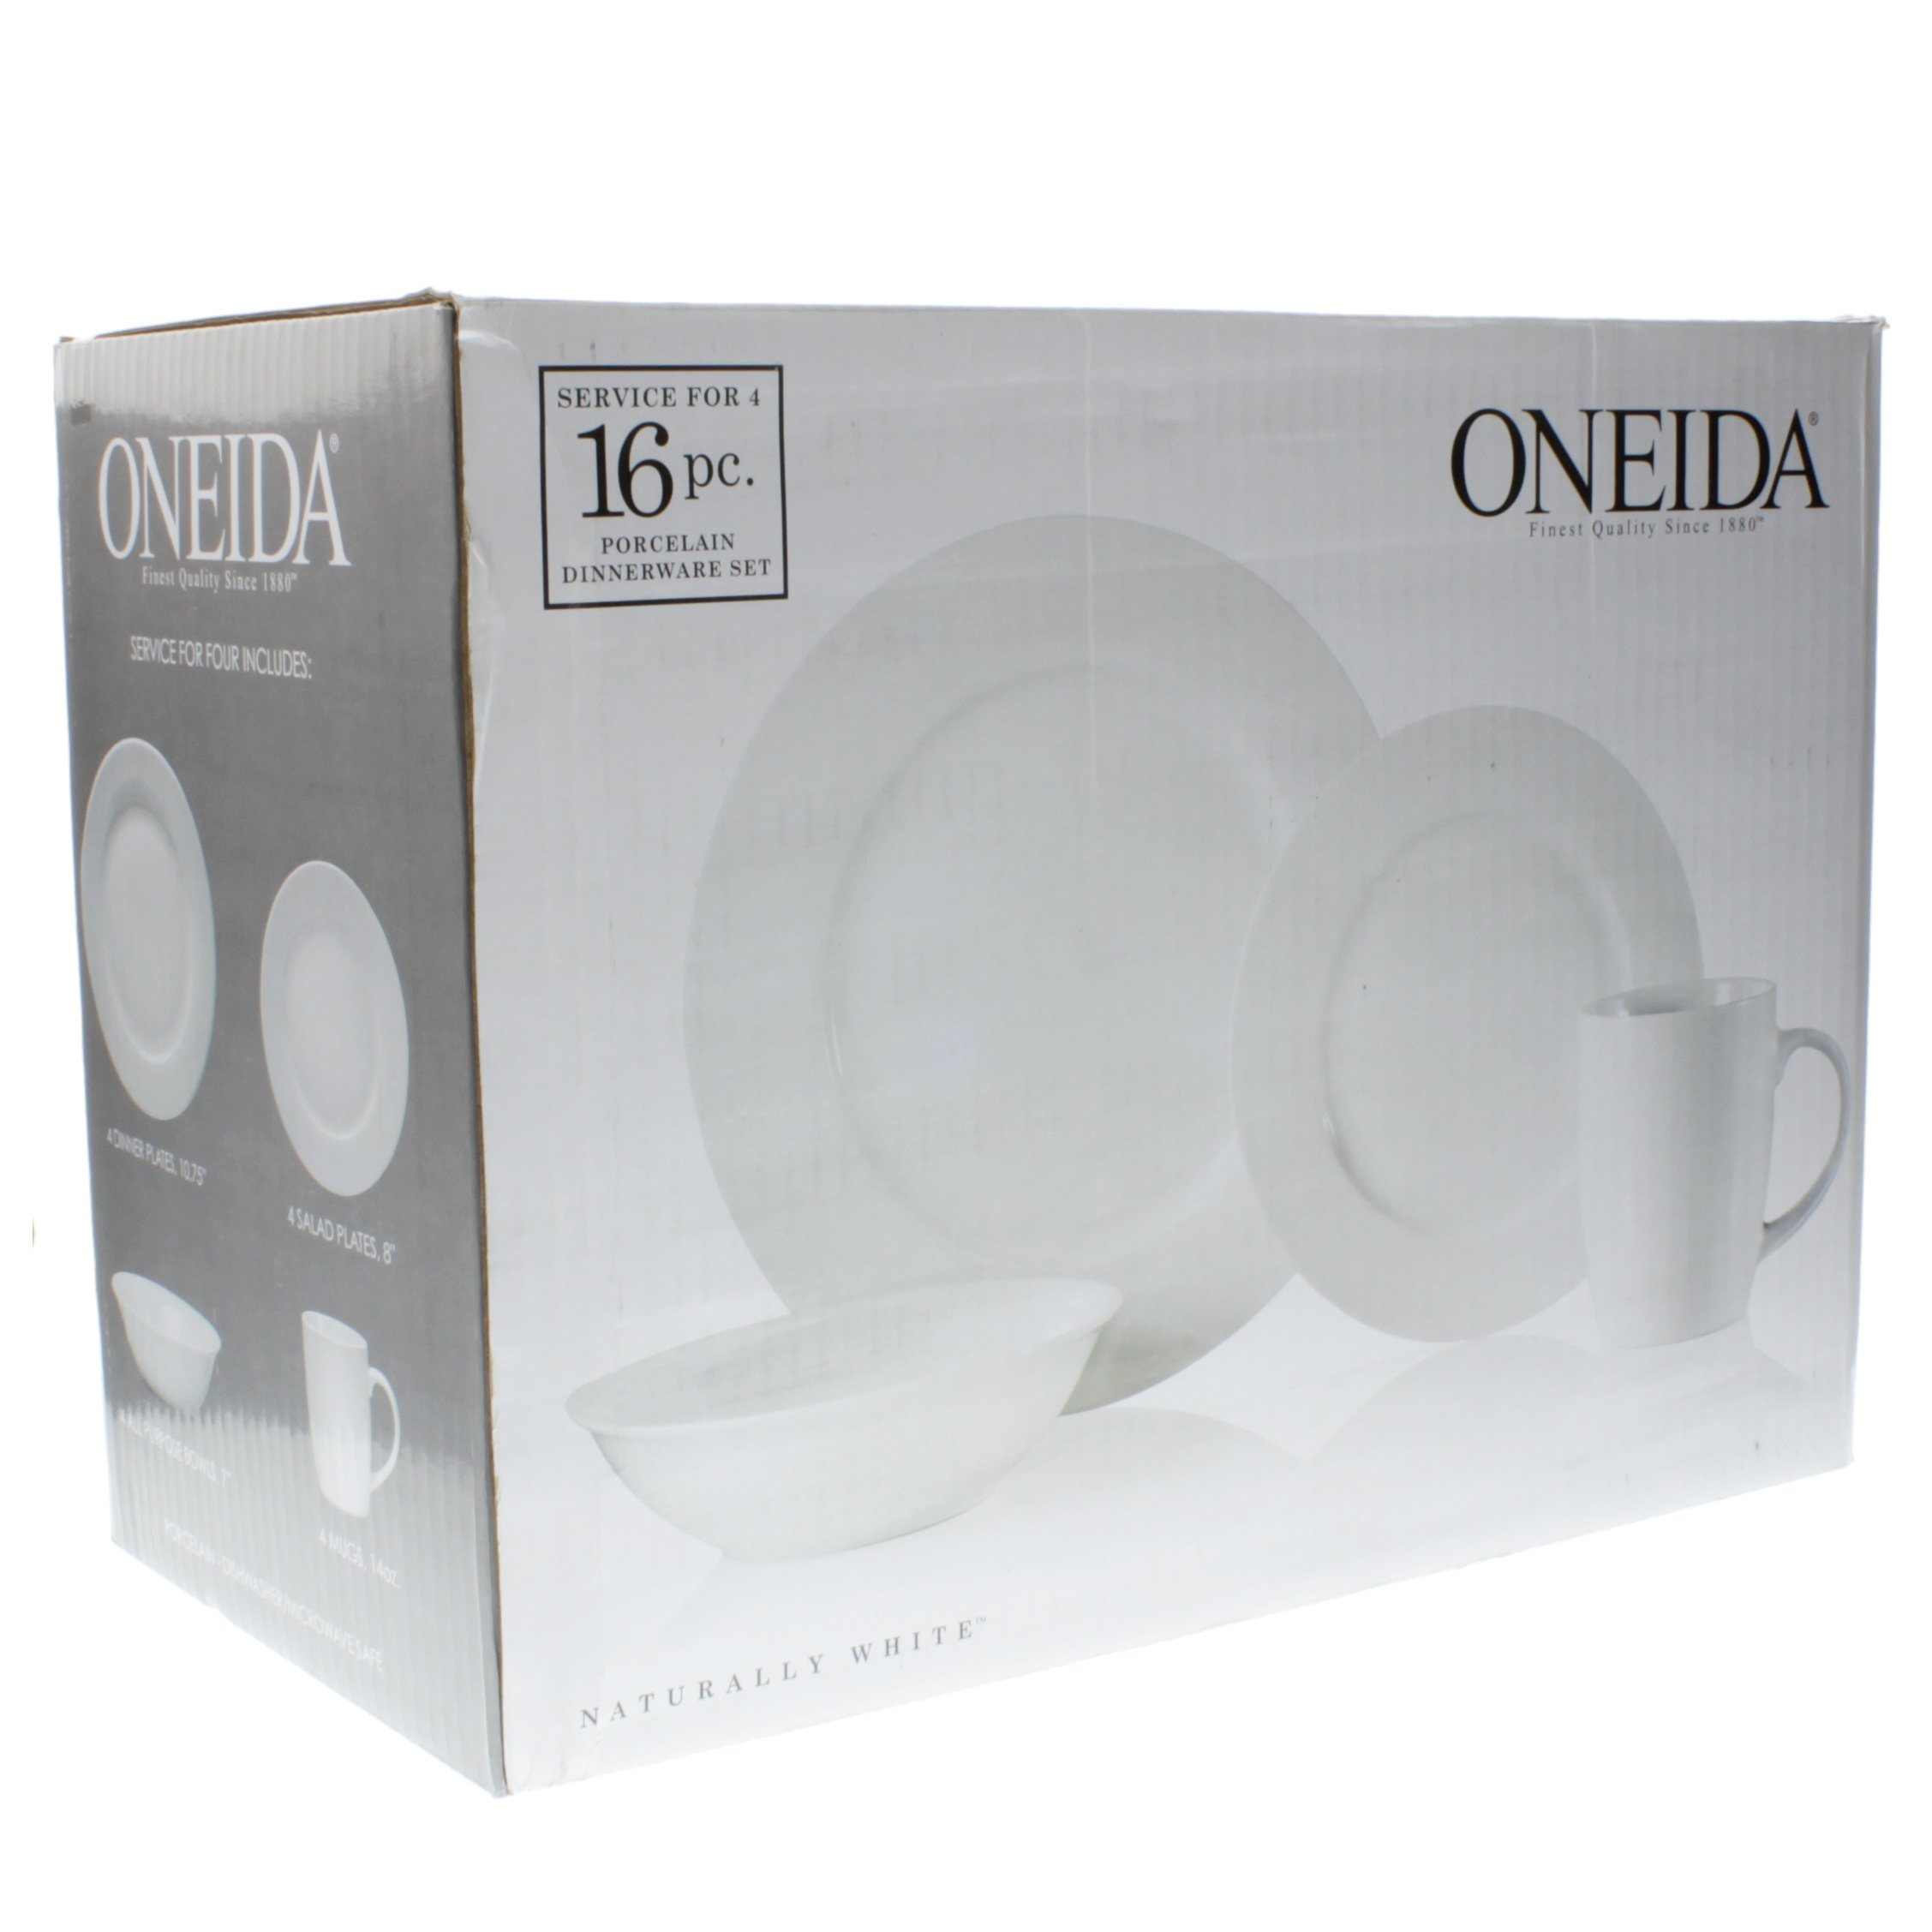 Oneida Naturally White Porcelain Dinnerware Set - Shop Dishes at HEB